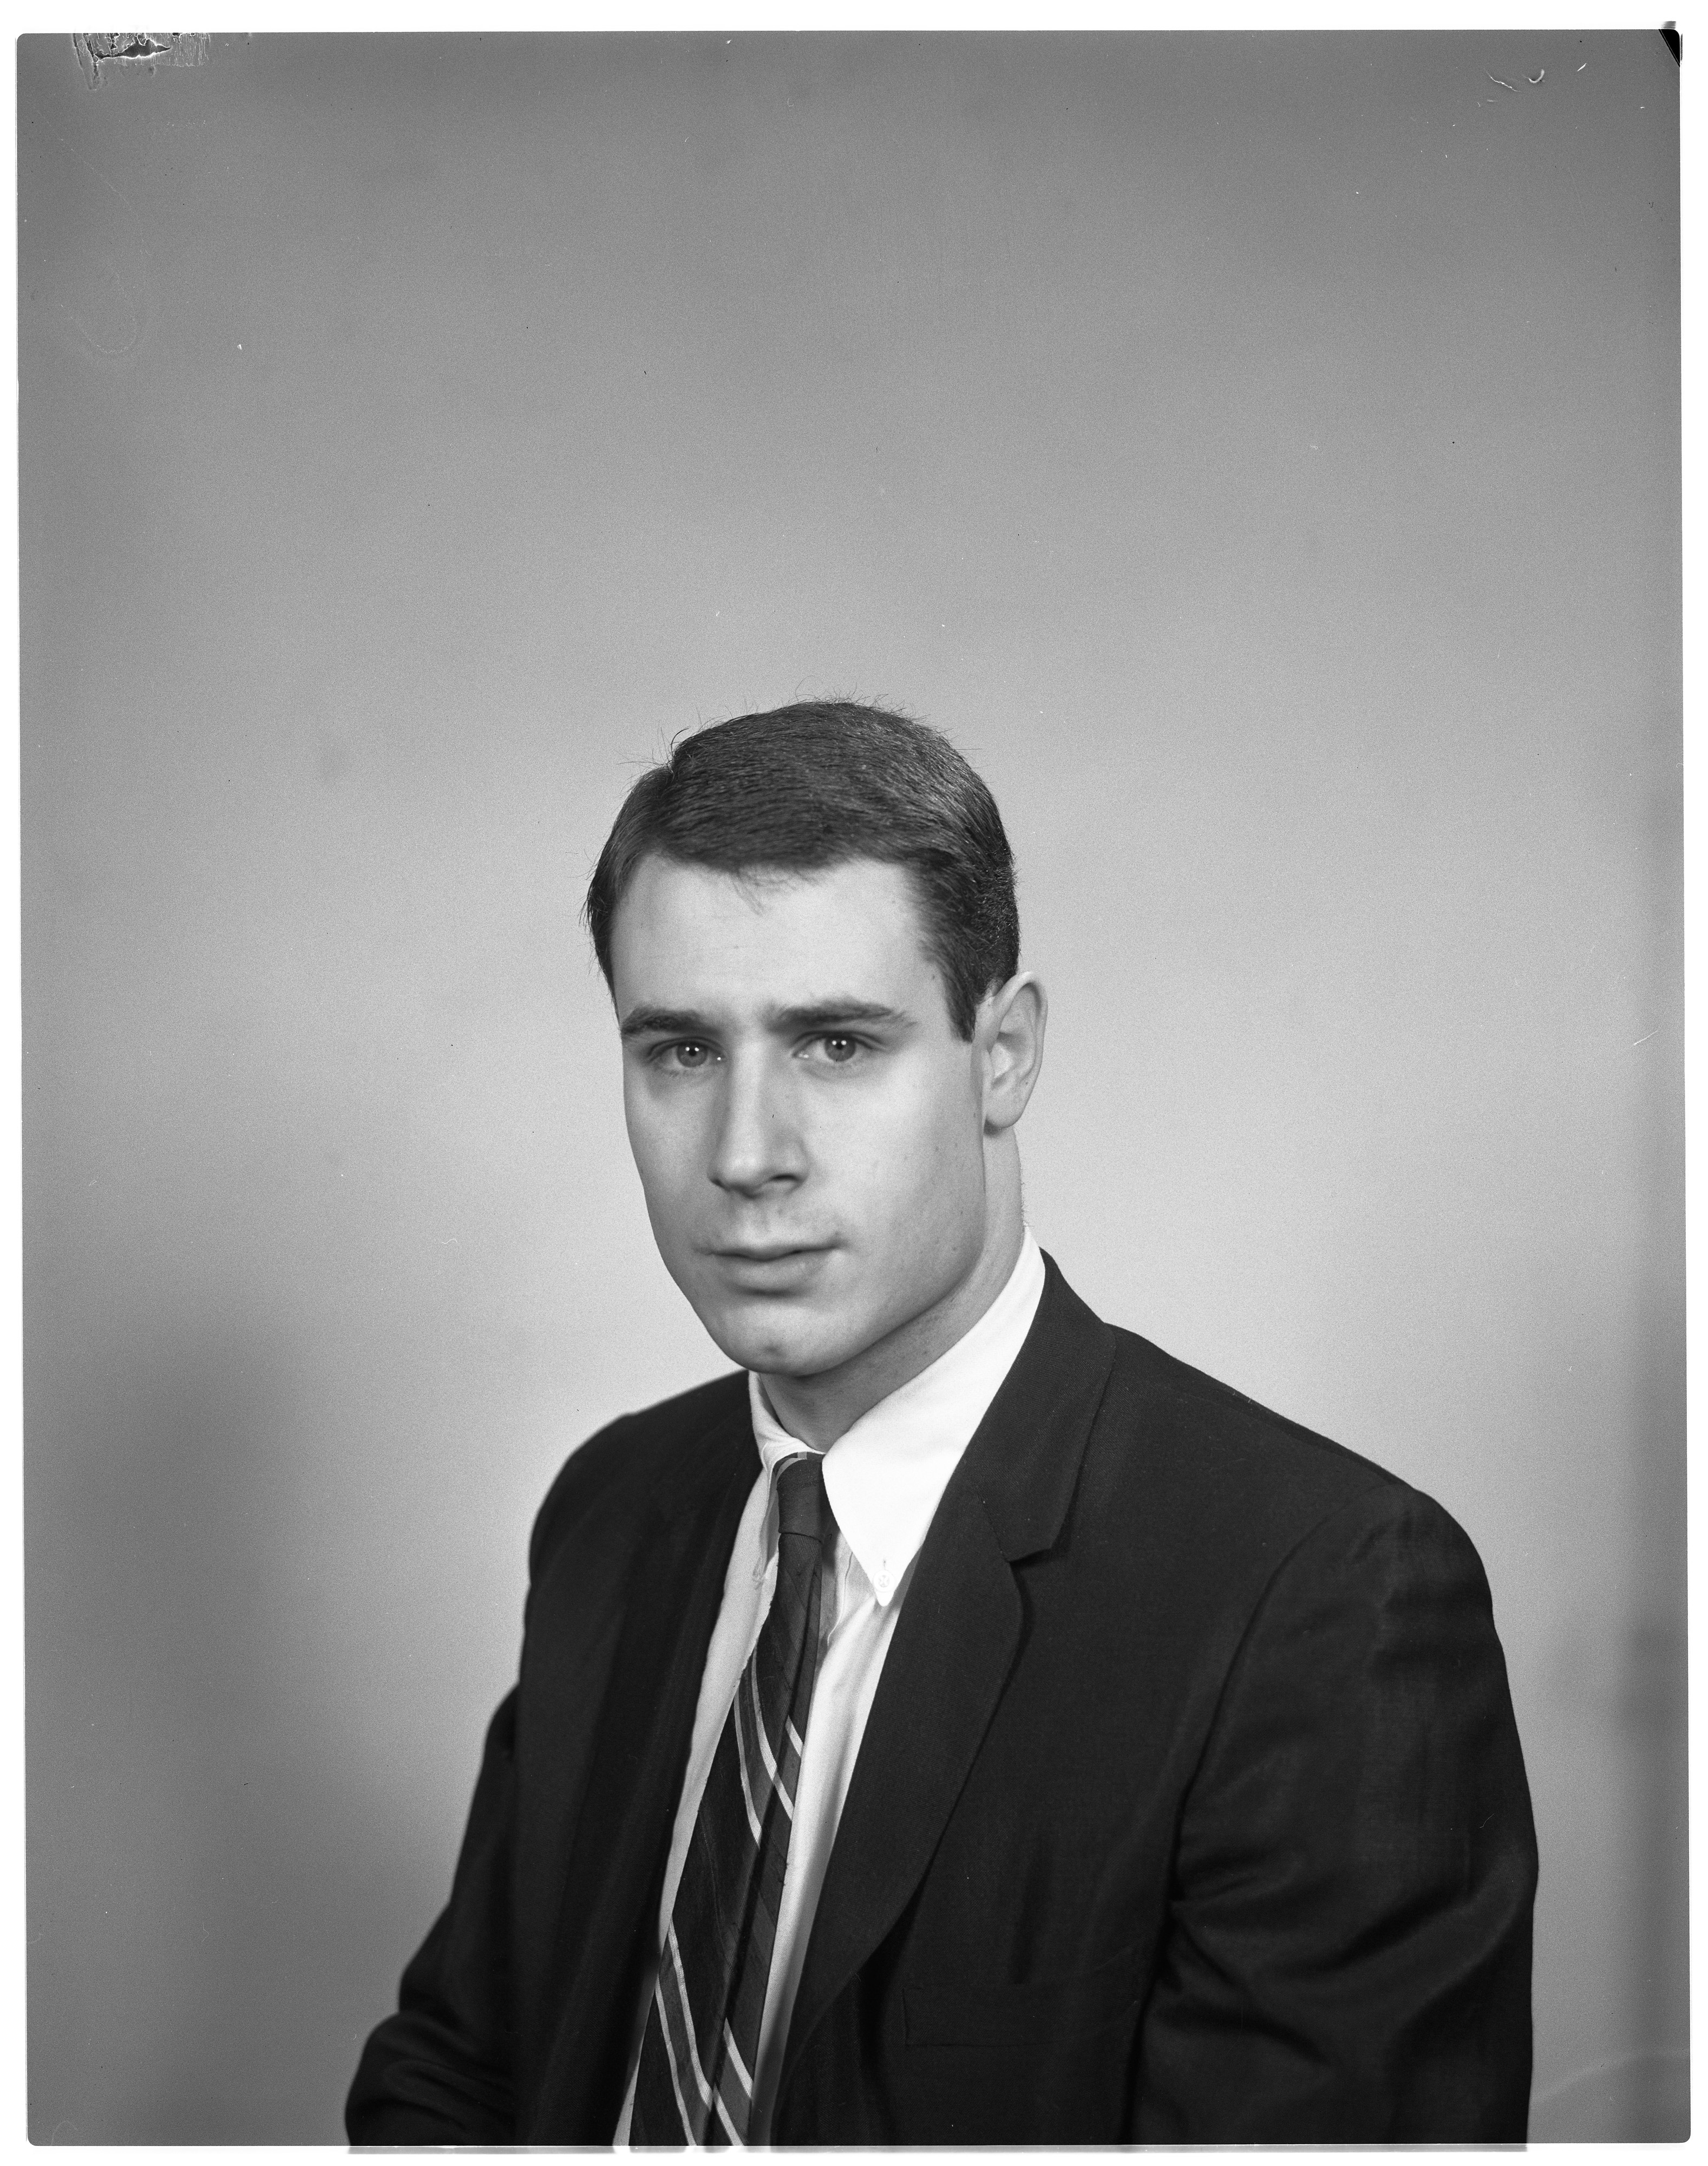 Peter Andrews, 1966 image